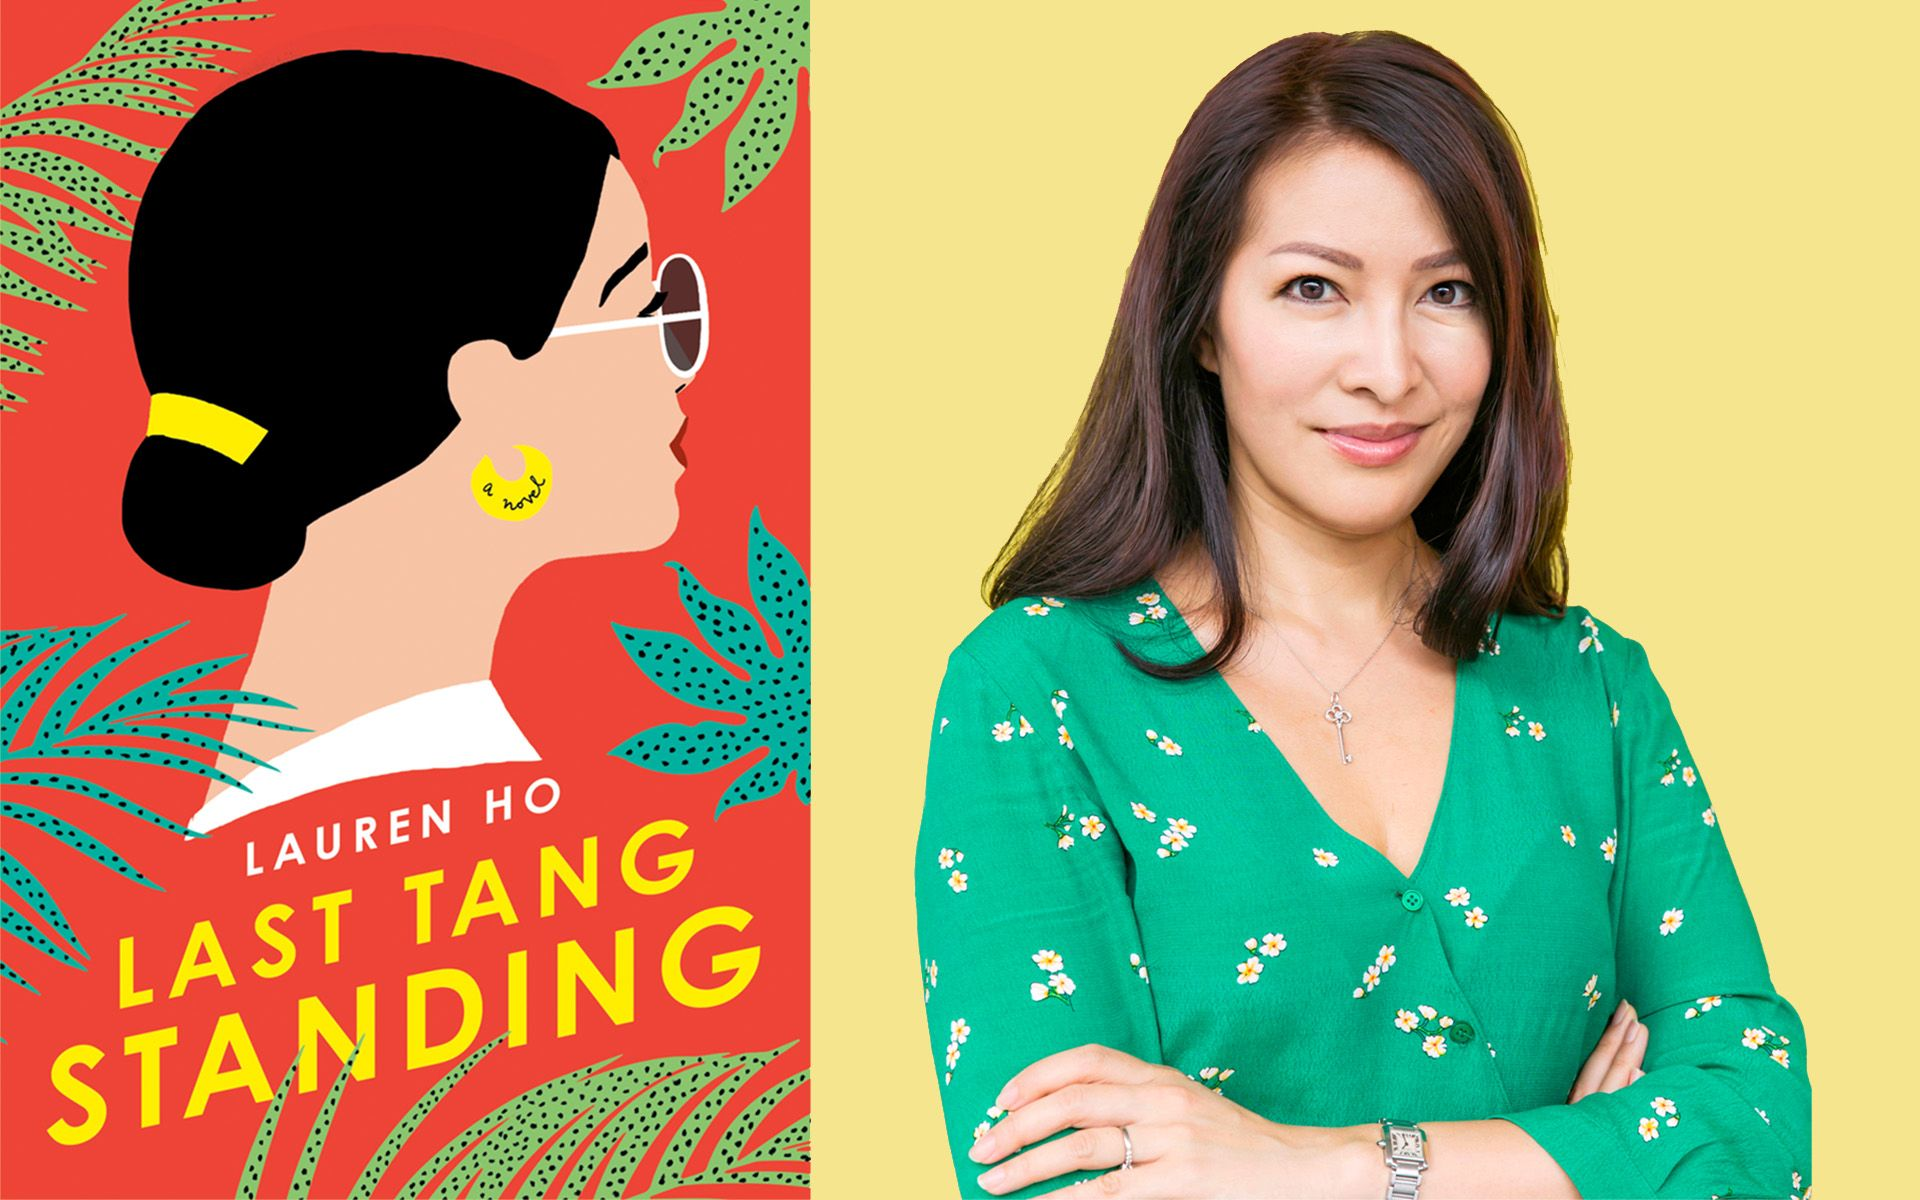 Lauren Ho, Author Of Last Tang Standing, On Transitioning From Law To Literature